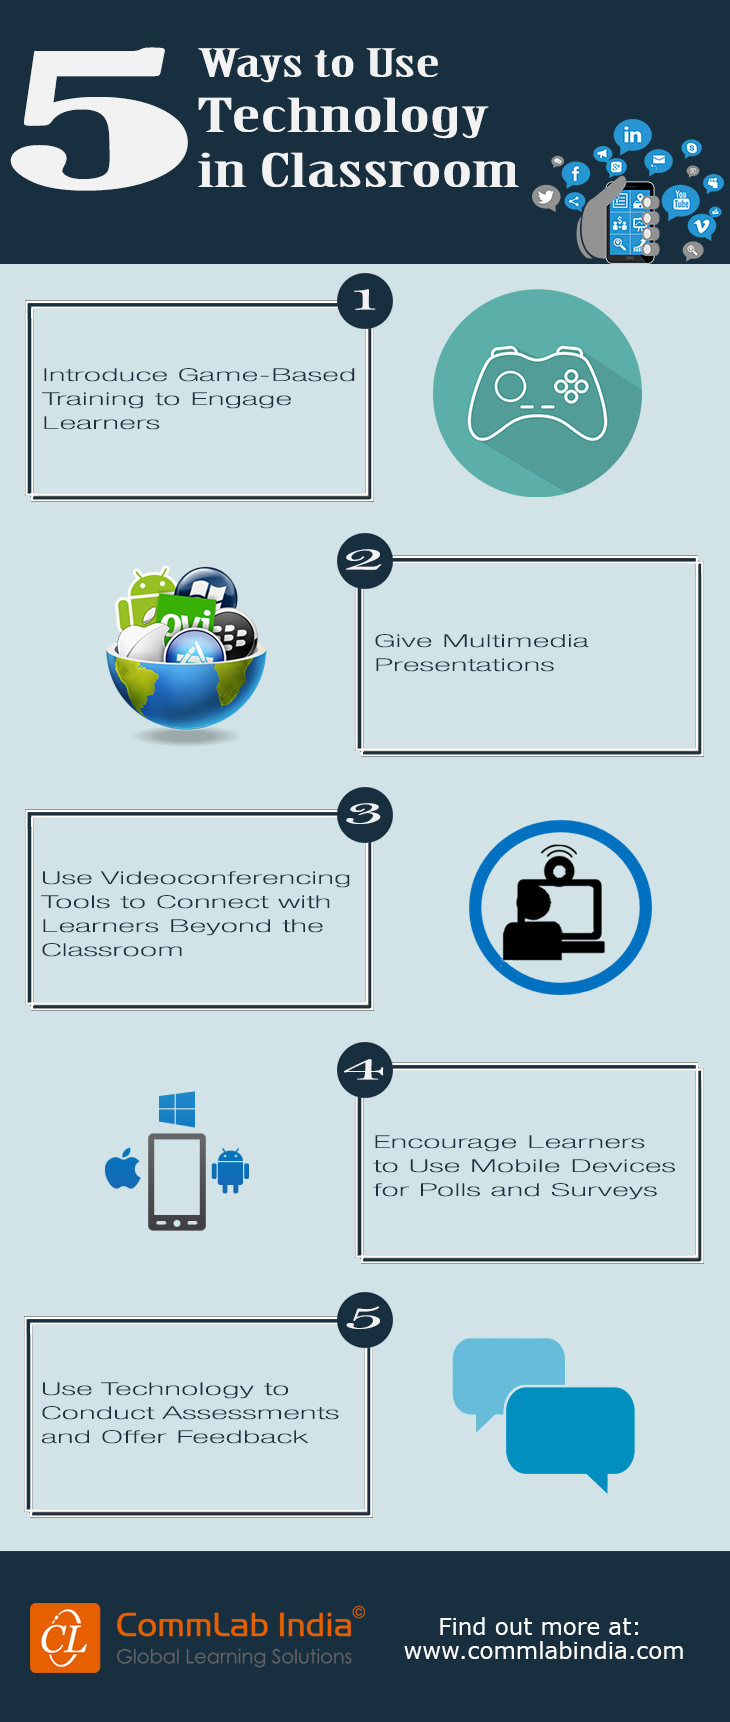 5 Ways to Use Technology in Classroom [Infographic]